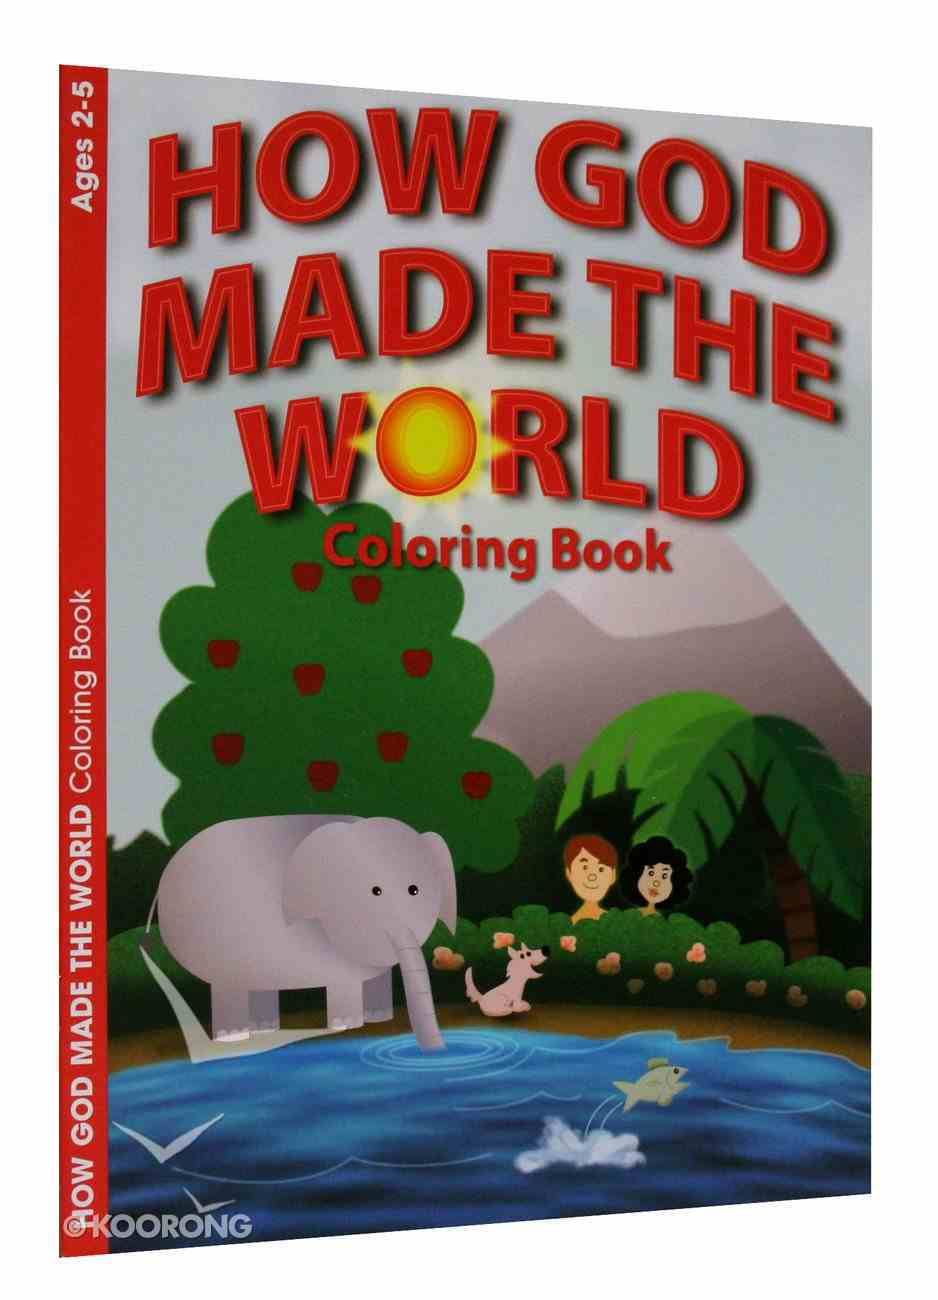 How God Made the World (Ages 2-5, Reproducible) (Warner Press Colouring/activity Under 5's Series) Paperback